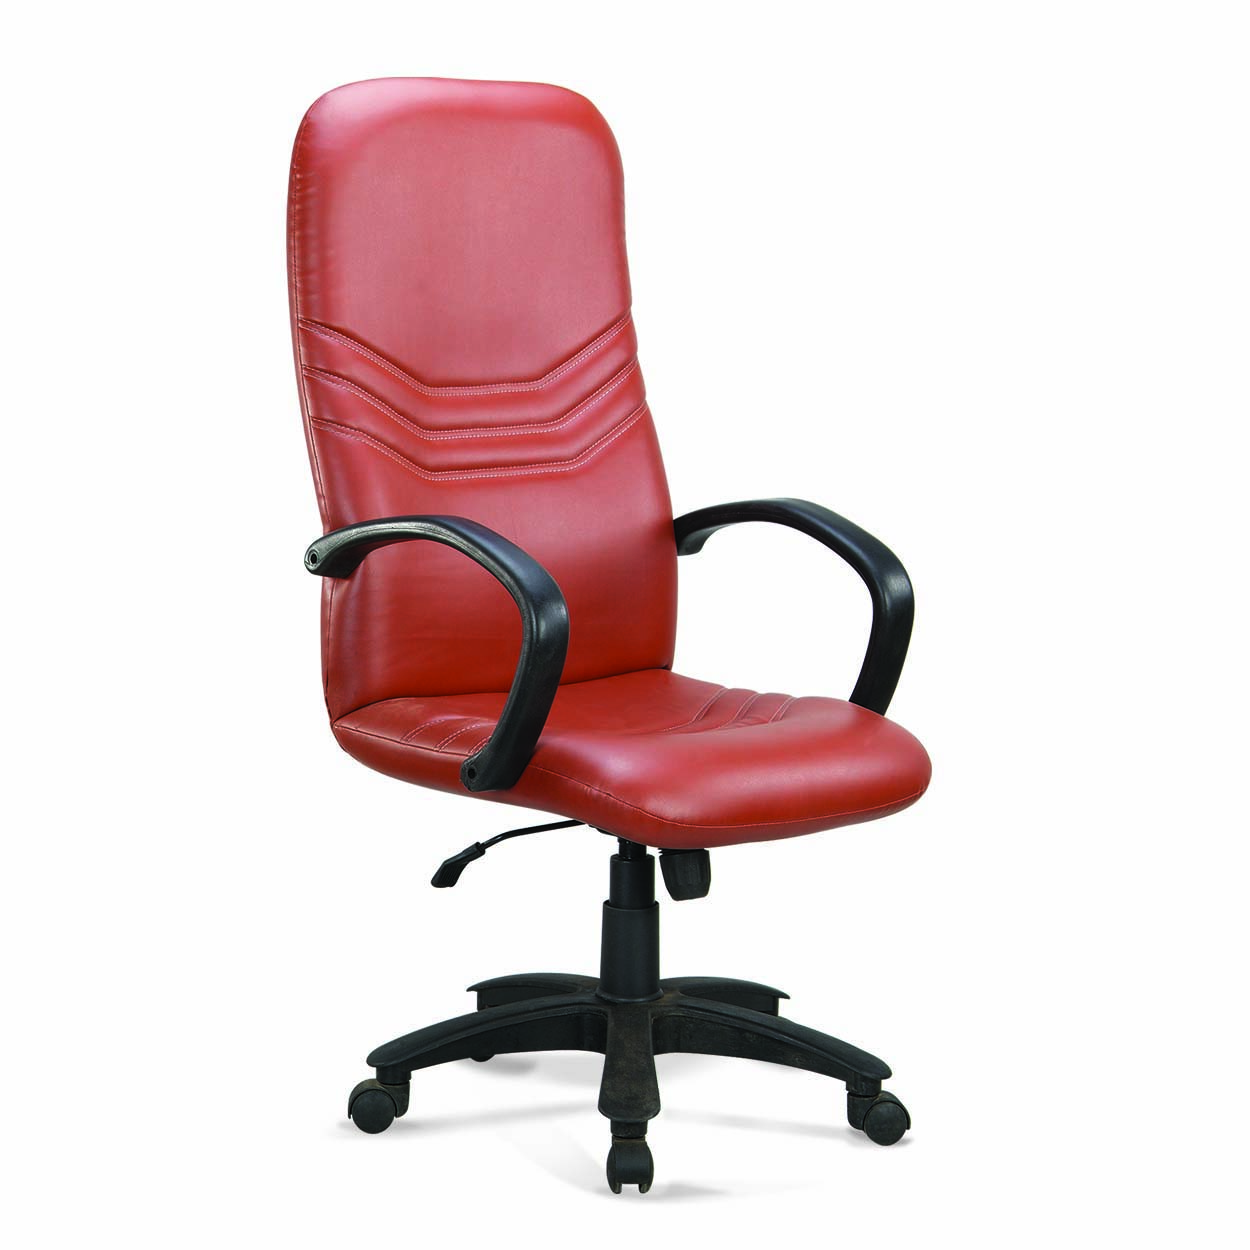 revolving chair for study massage whole foods swani furniture